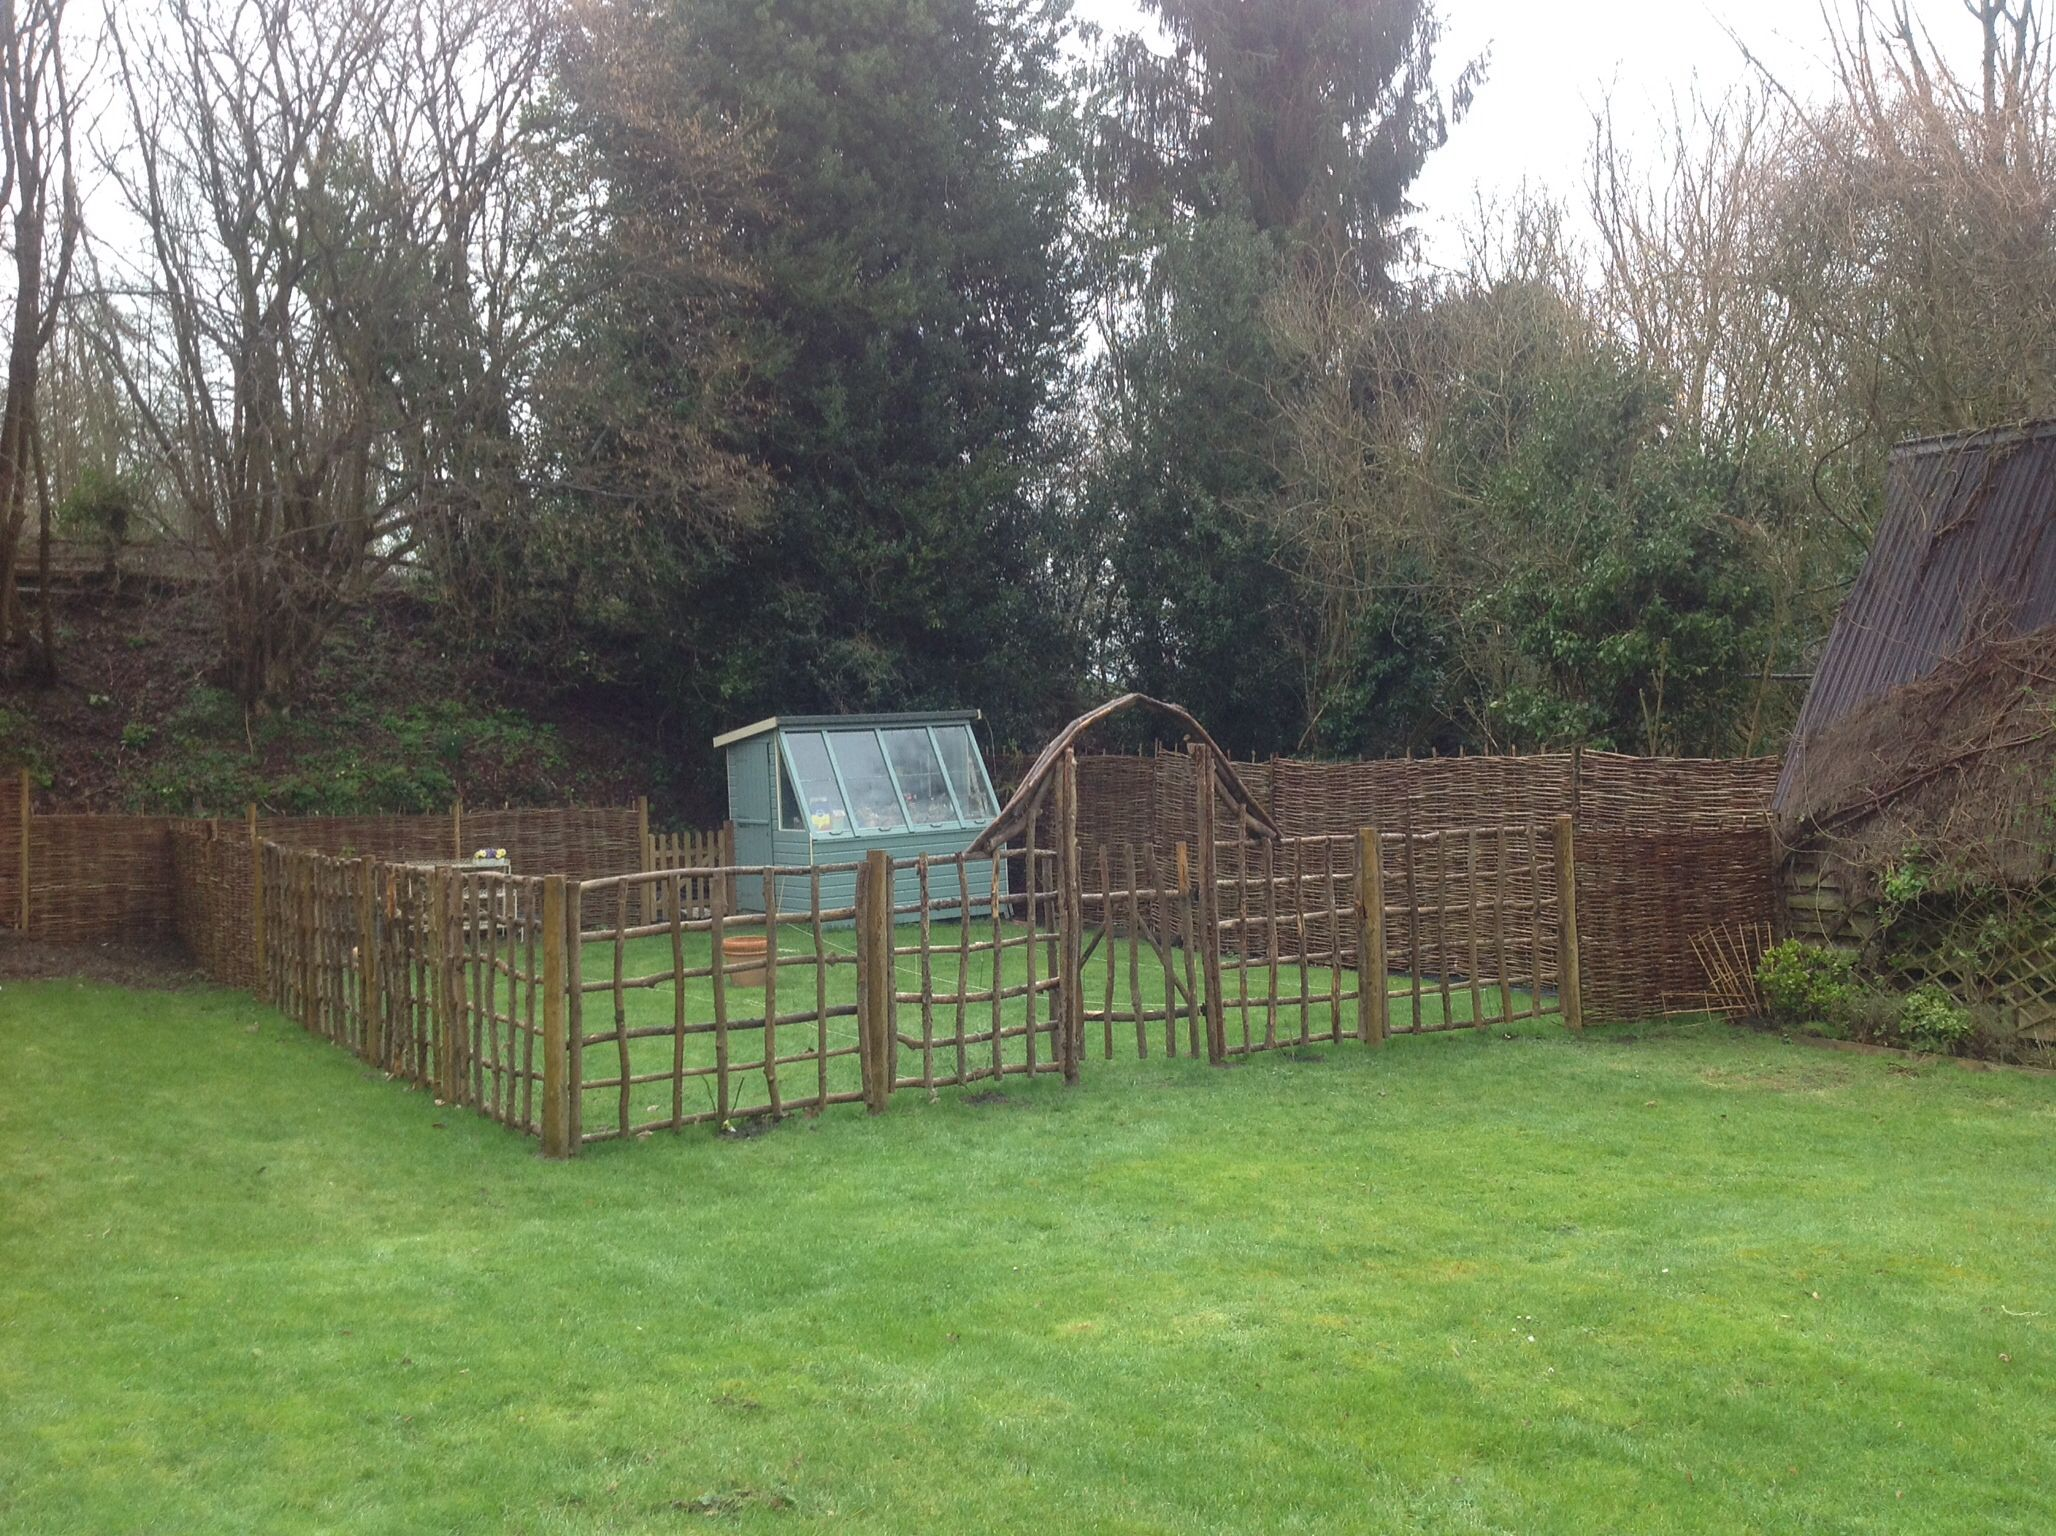 Superieur Chestnut Trellis As Fencing For Intended Vegetable Patch. With Gate And  Arch. All From Natural Fencing UK.